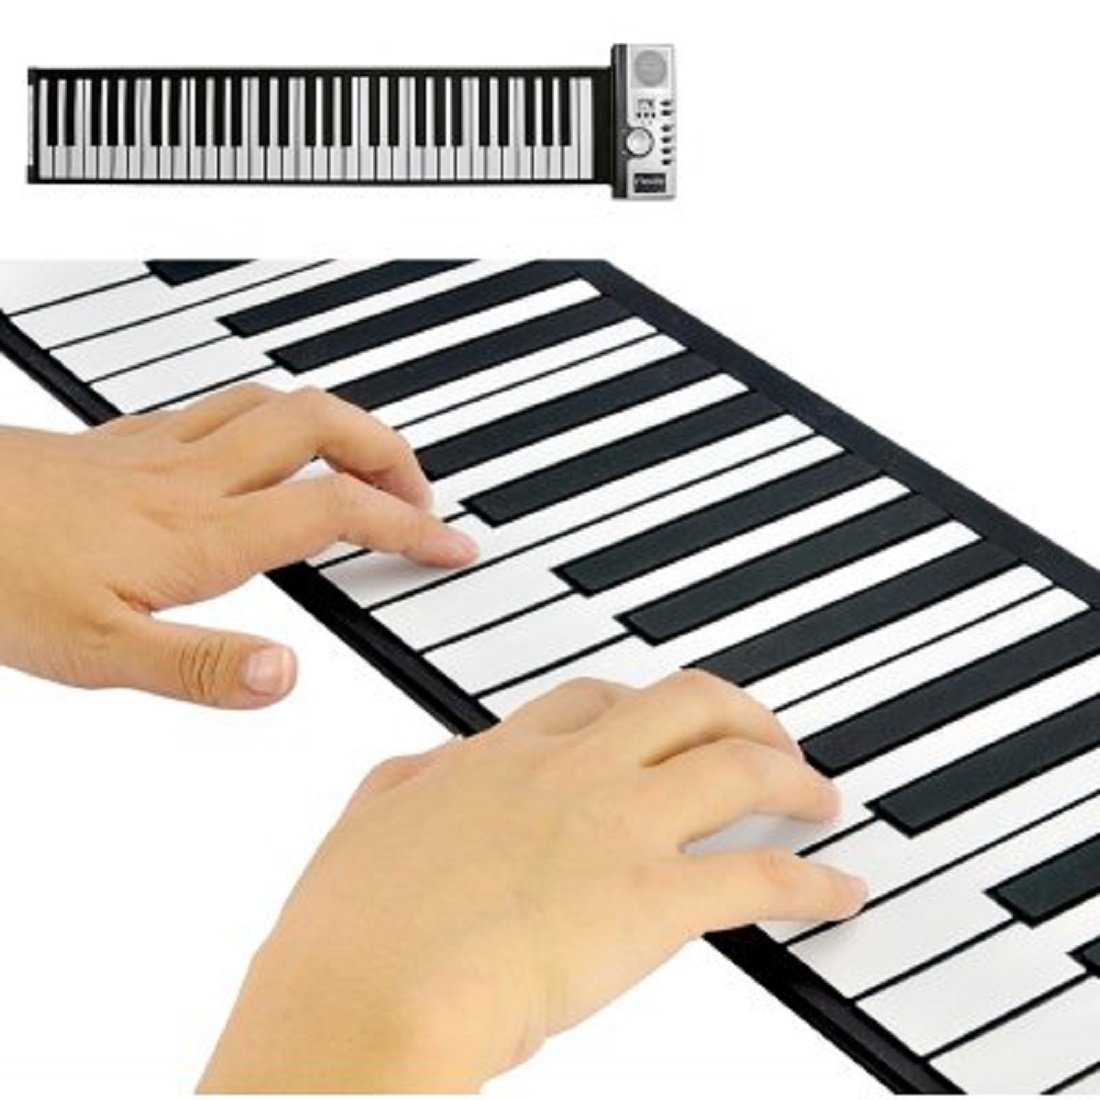 Flexible Roll Up Synthesizer Keyboard Piano With Soft Keys Shopifyl KS-Tablets-422